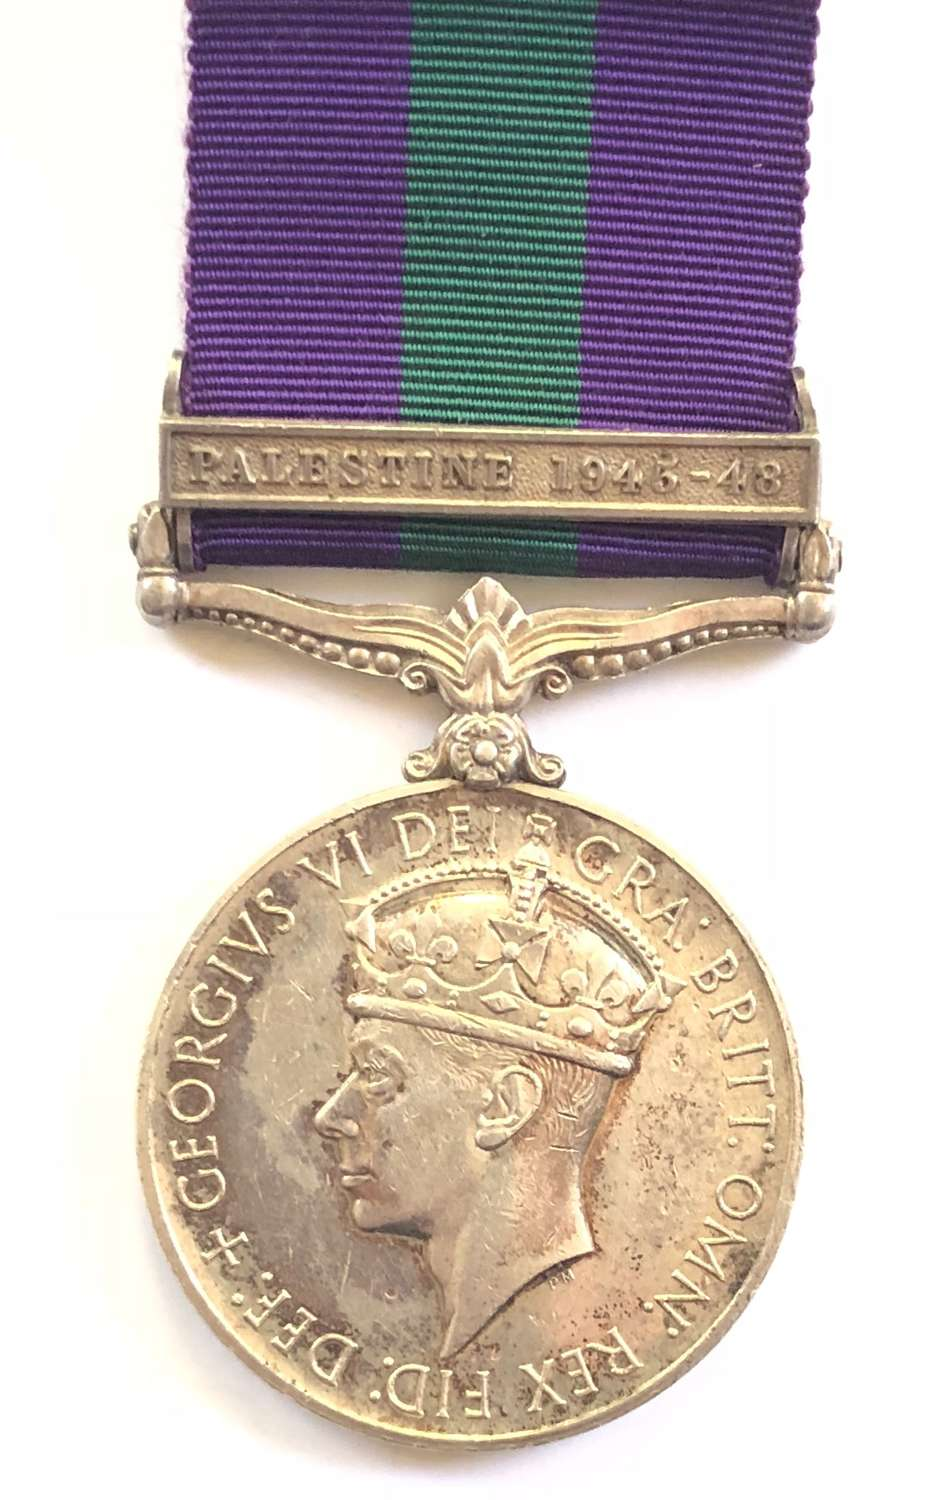 4th / 7th Dragoon Guards General Service Medal